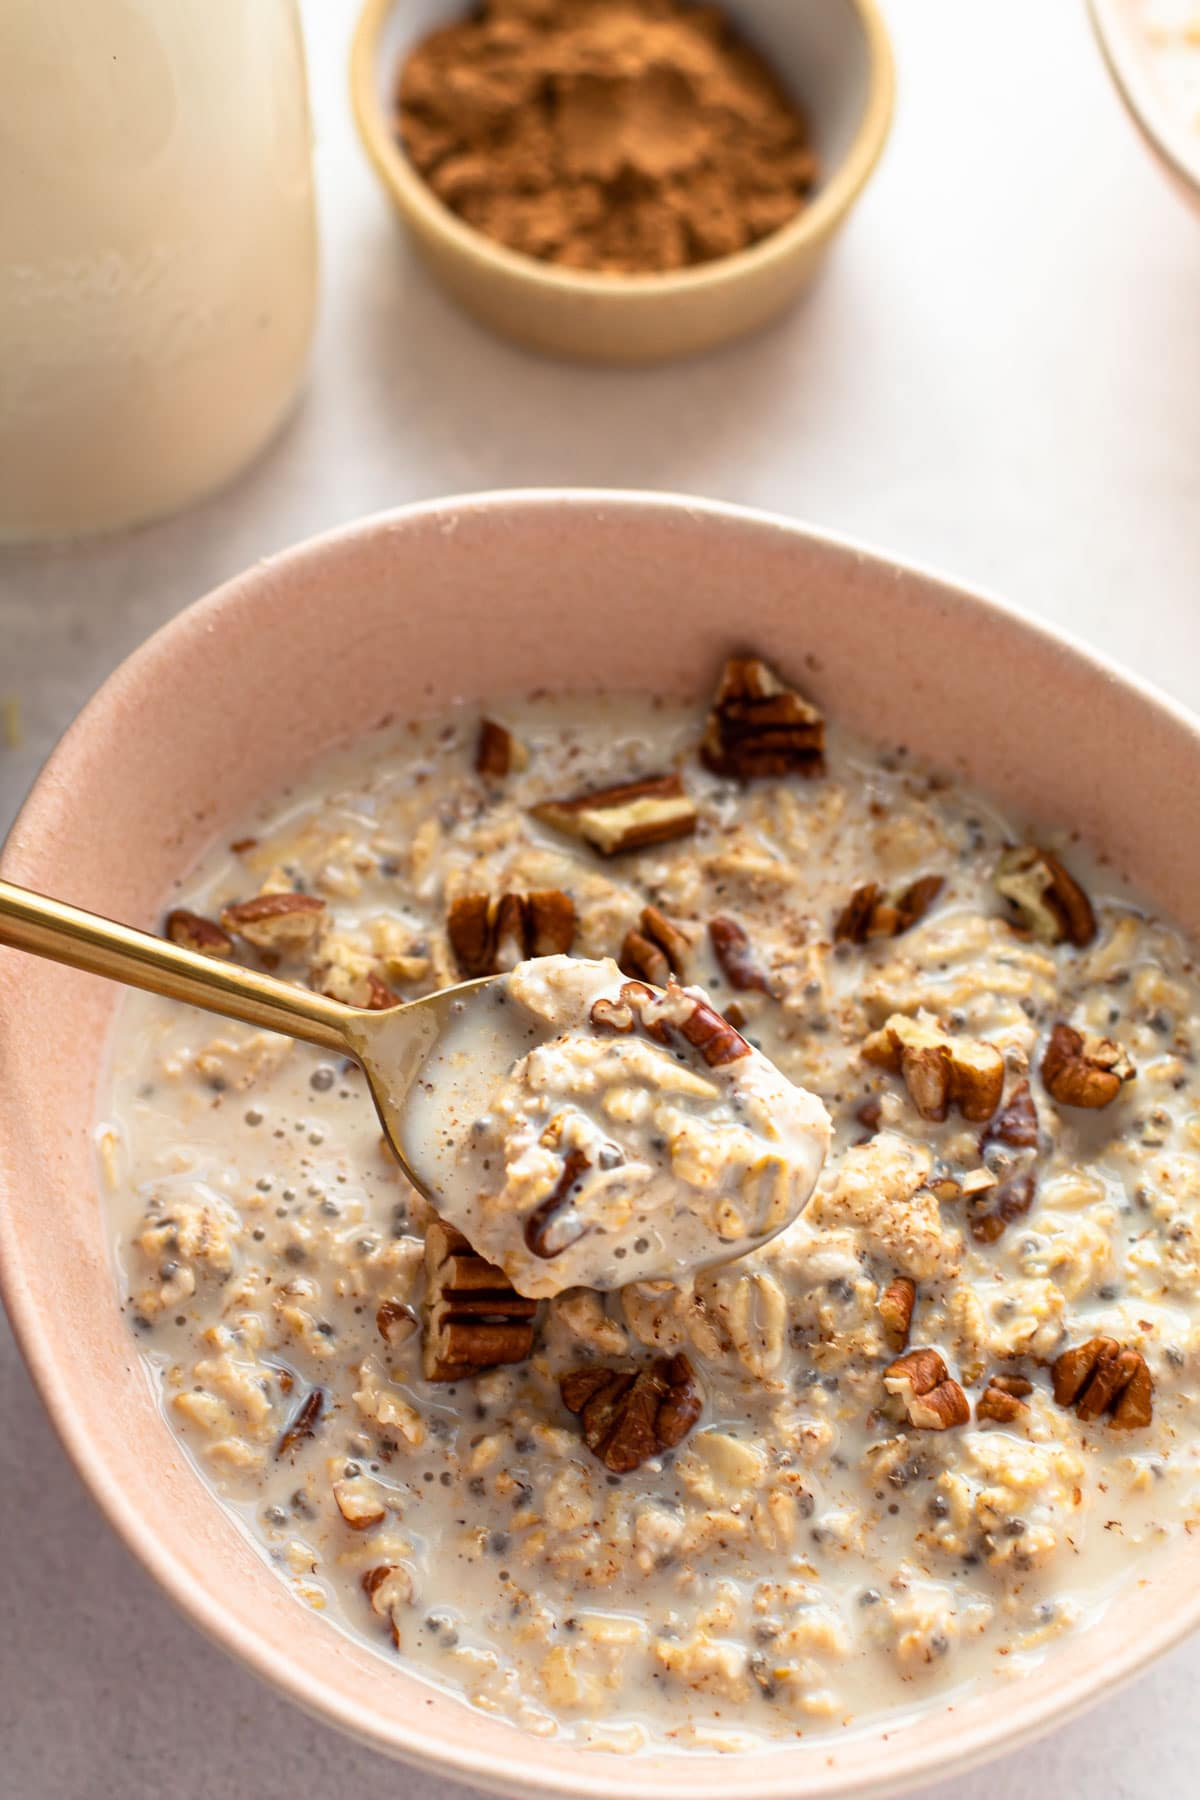 A spoonful of overnight oats.